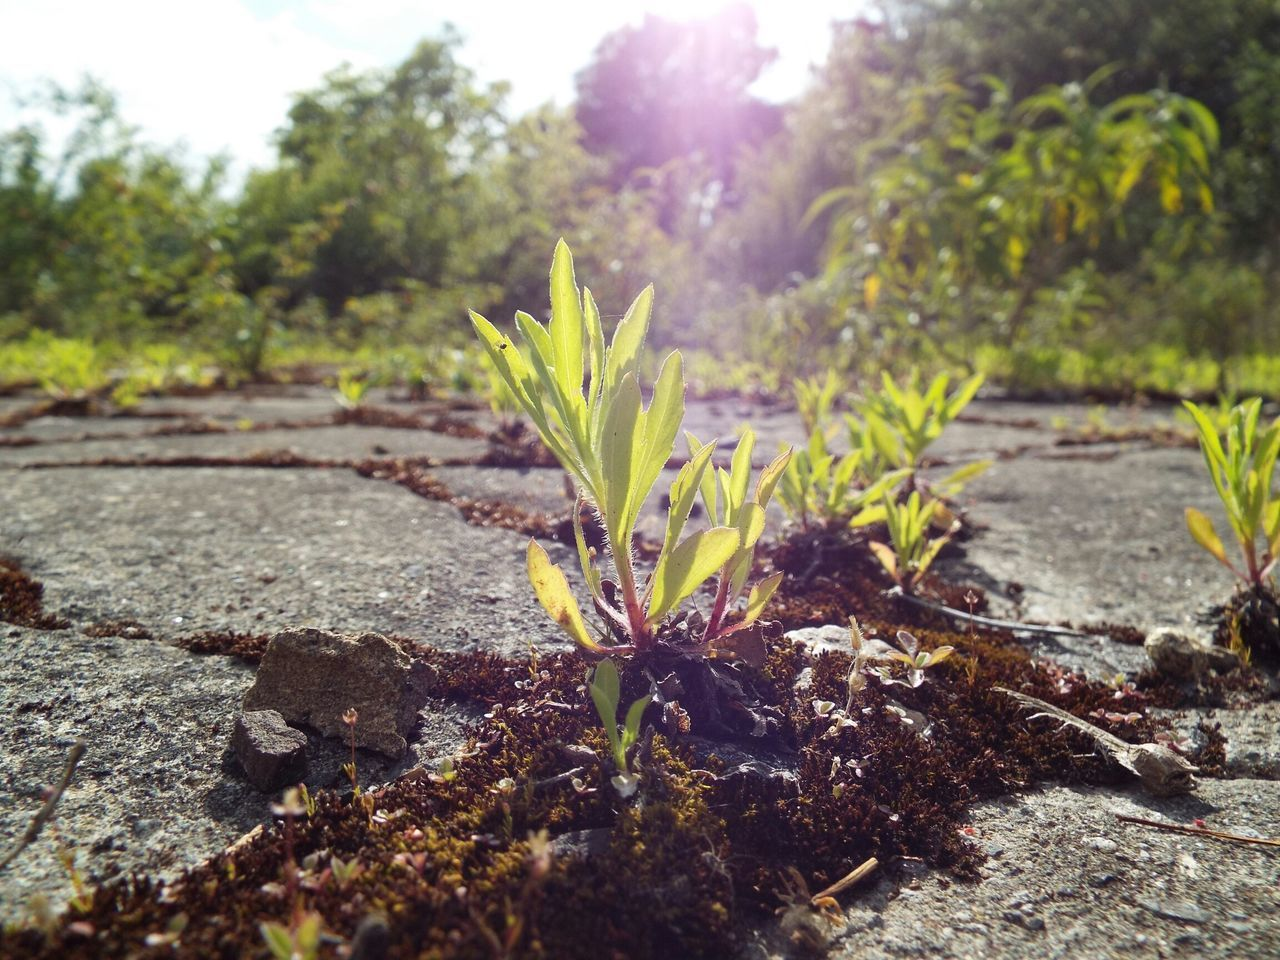 Close-Up Of Plant Growing On Cracked Road Against Sky